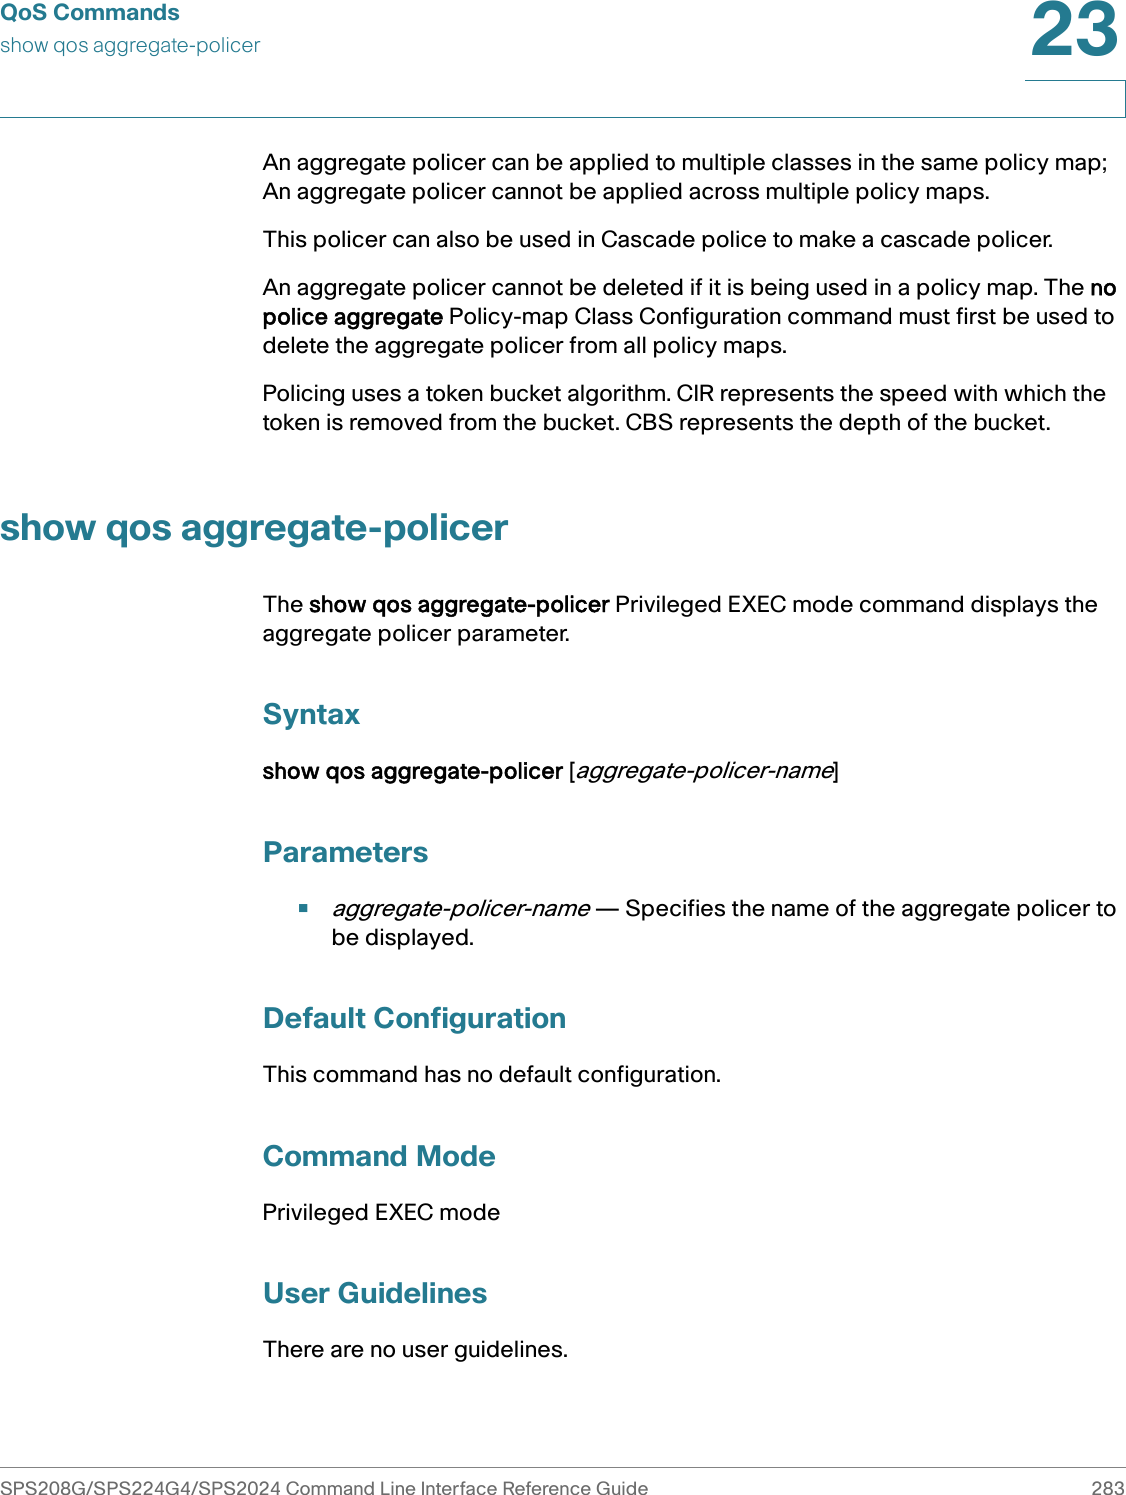 Cisco Systems Sps2024 Reference Guide SPS208G/SPS224G4